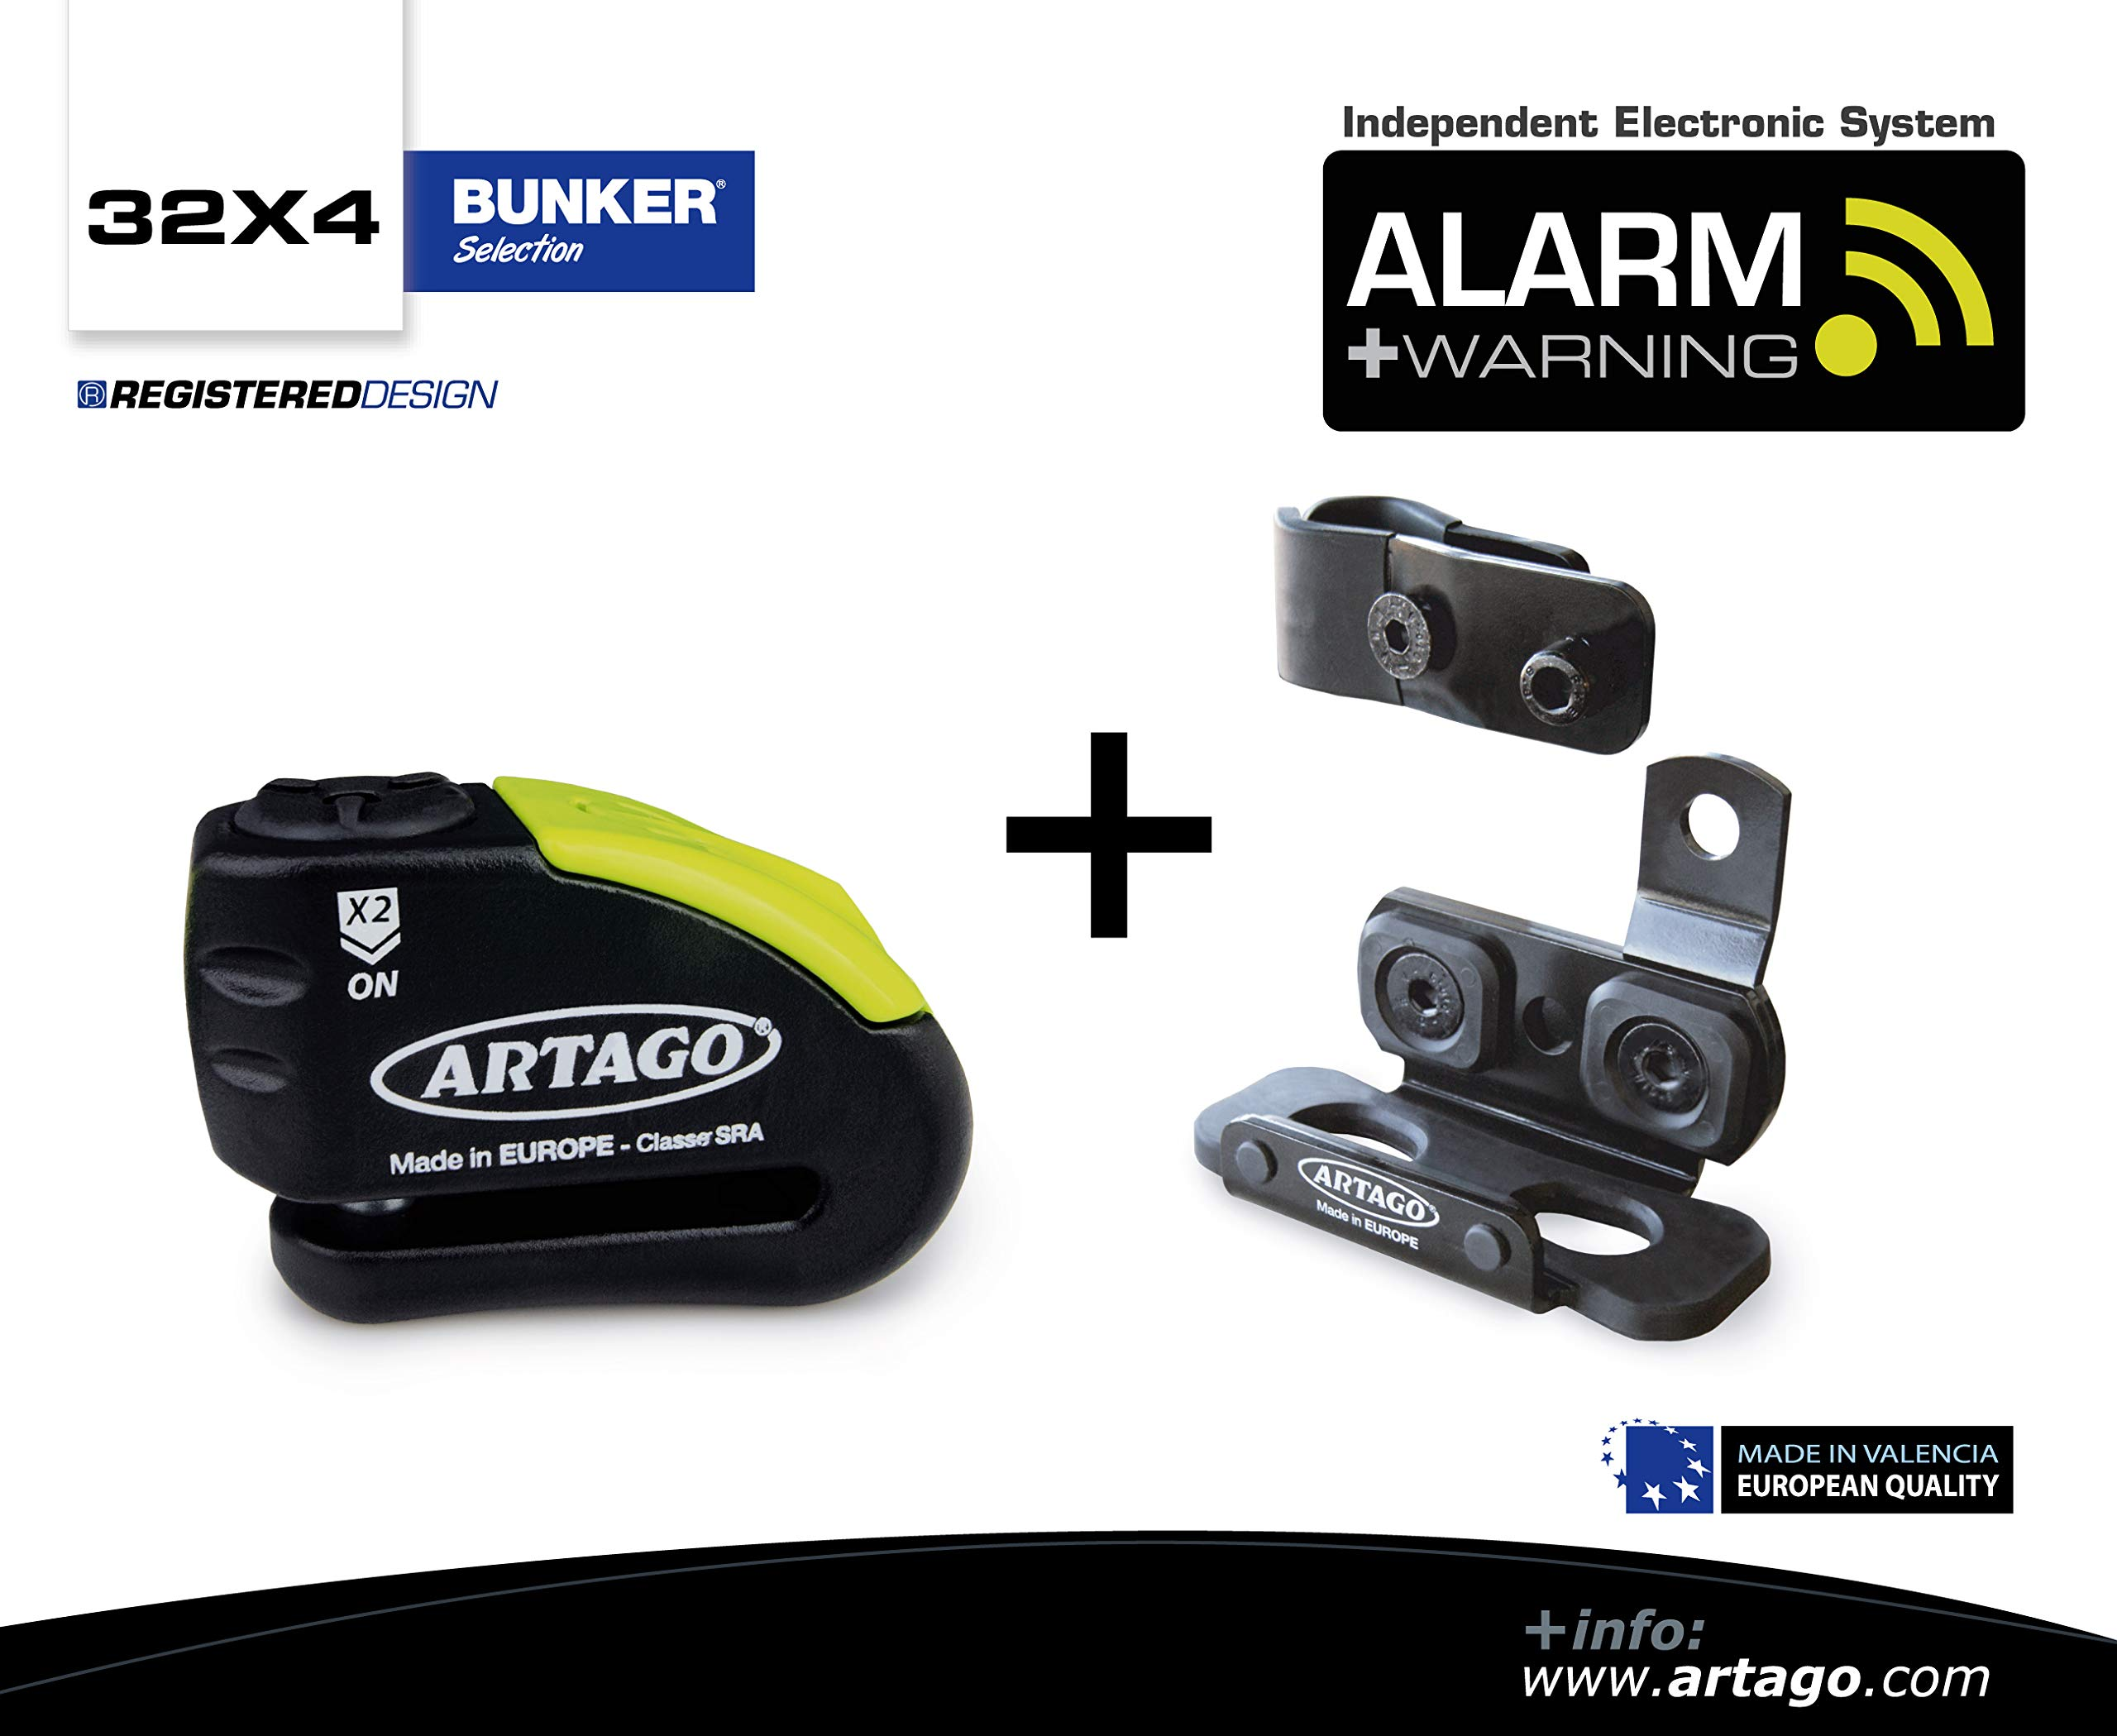 Artago 30X4 Anti-Theft Disc Lock with Alarm 120db High Range and Support for Honda Africa Twin 2016 2018, ø14 Double Closure, SRA and Sold Secure Gold, Bunker Selection